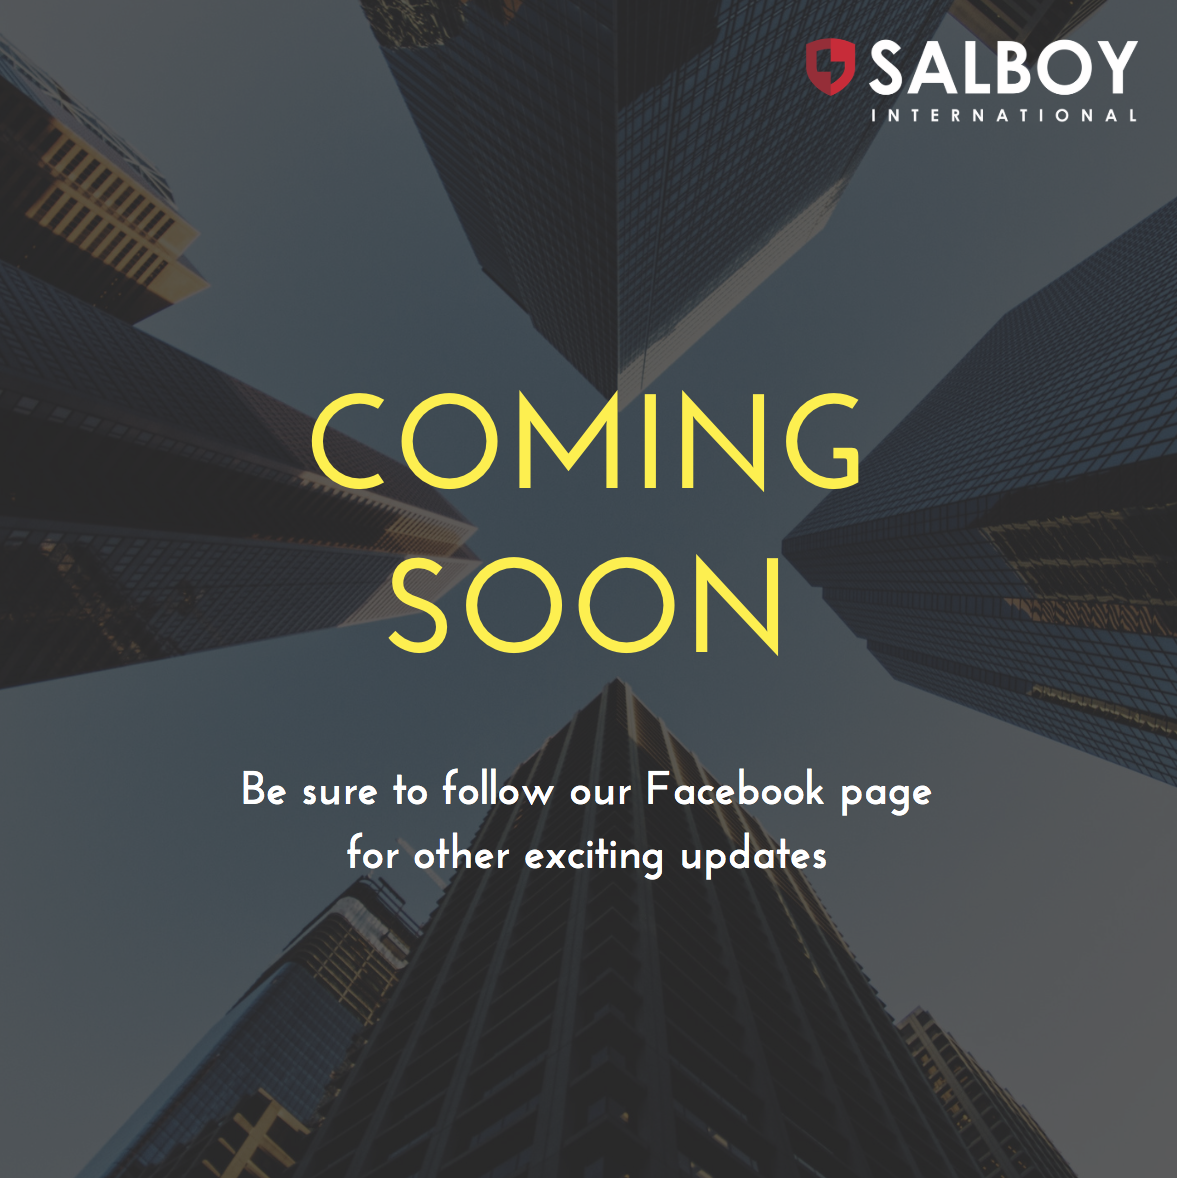 [Year-End Sales Event – Last Chance for Remaining Units] Salboy Property Exhibition, HONG KONG